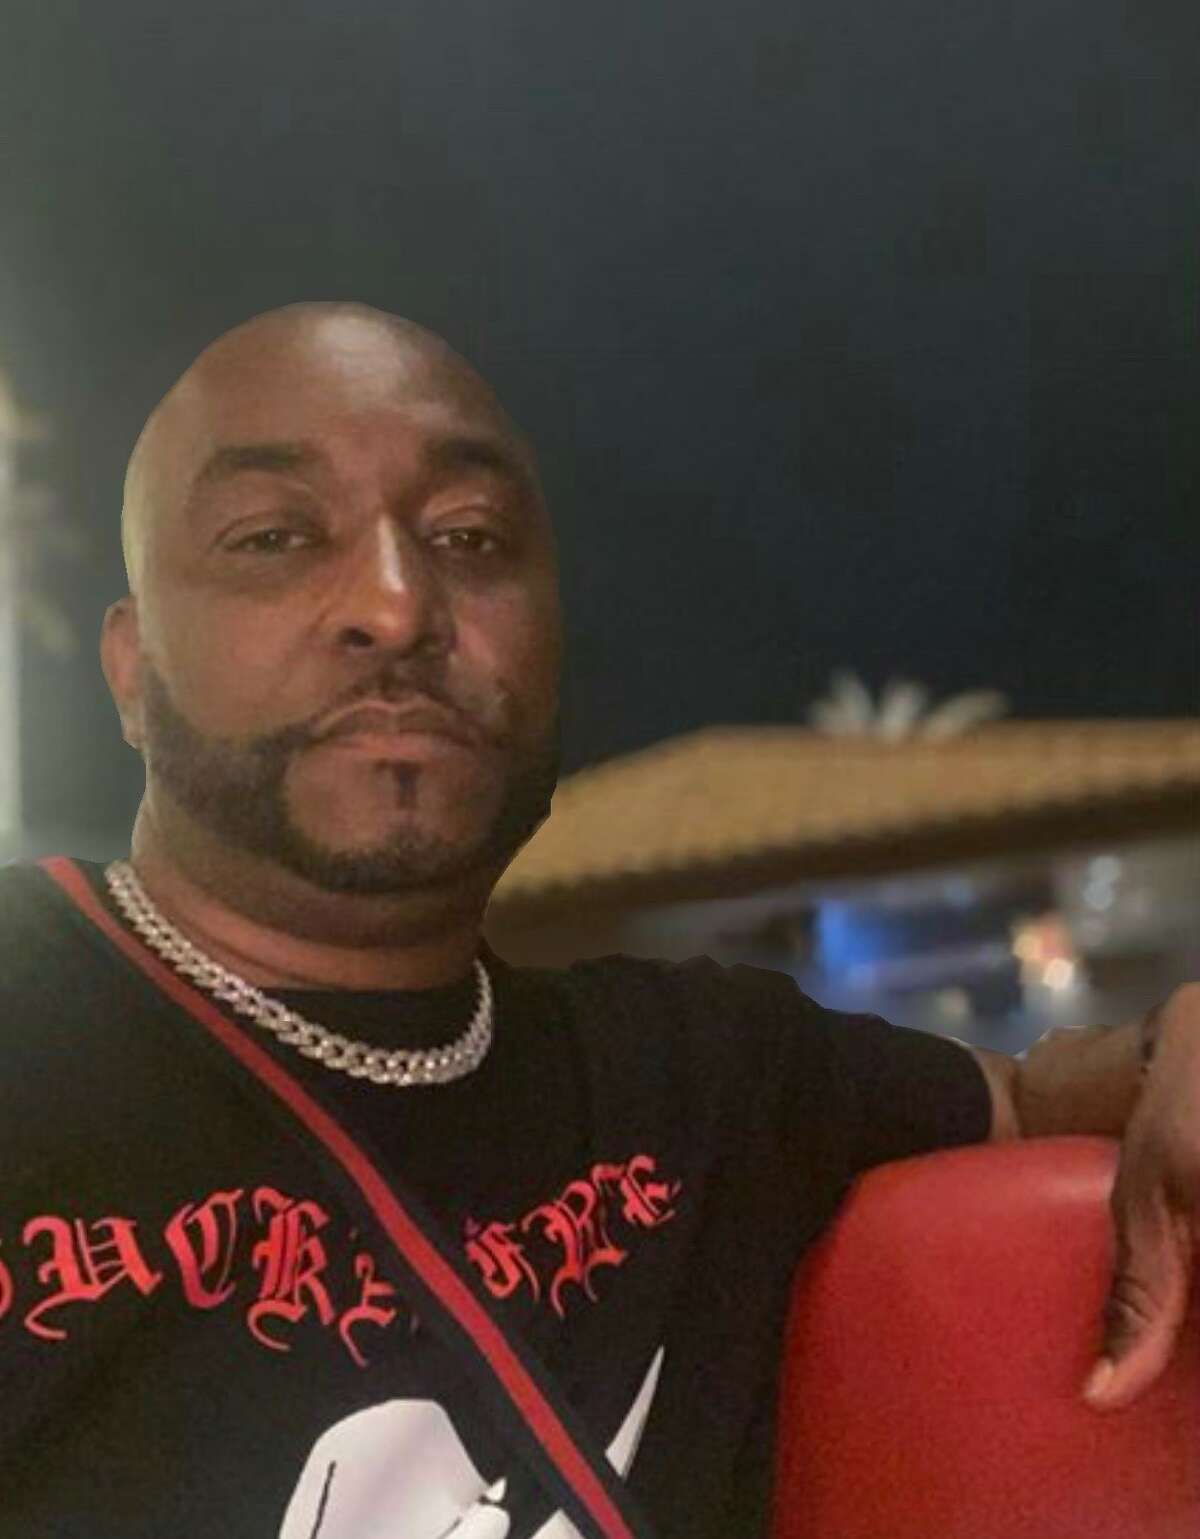 Dyrin Riculfy, 43, was shot Aug. 21, 2021, at Grotto Ristorante and later died.